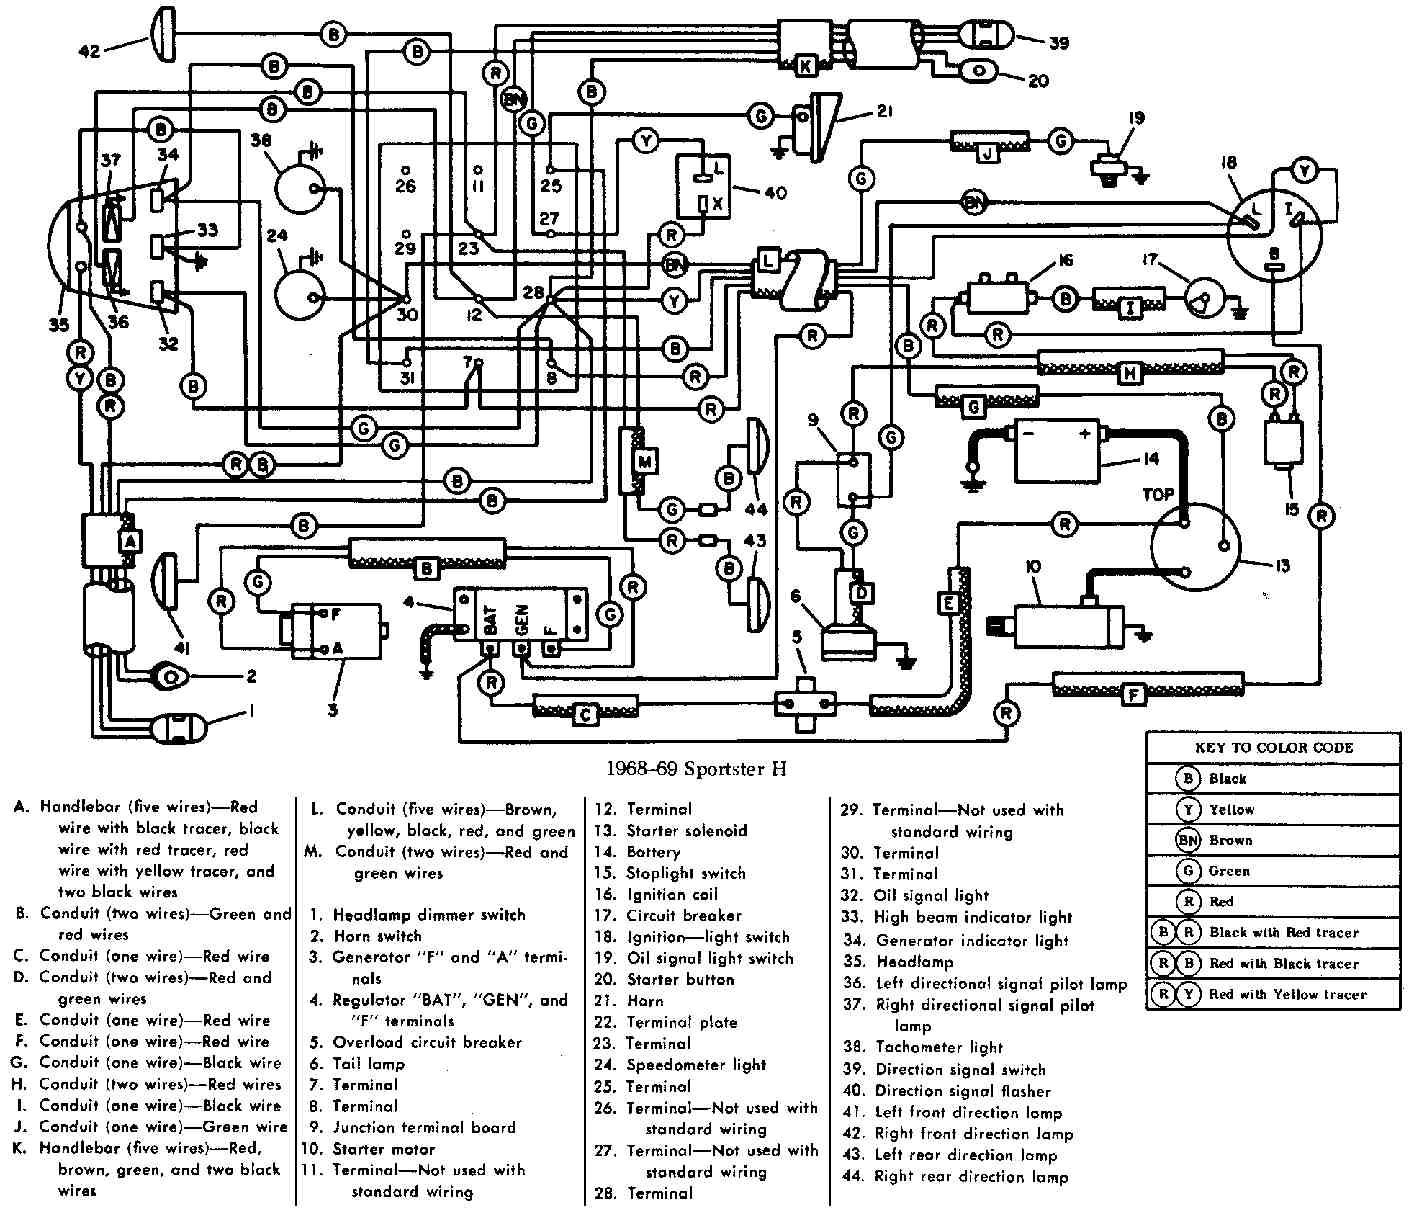 The Following Wiring Schematic Is The Electrical Wiring Diagram Of The 1968